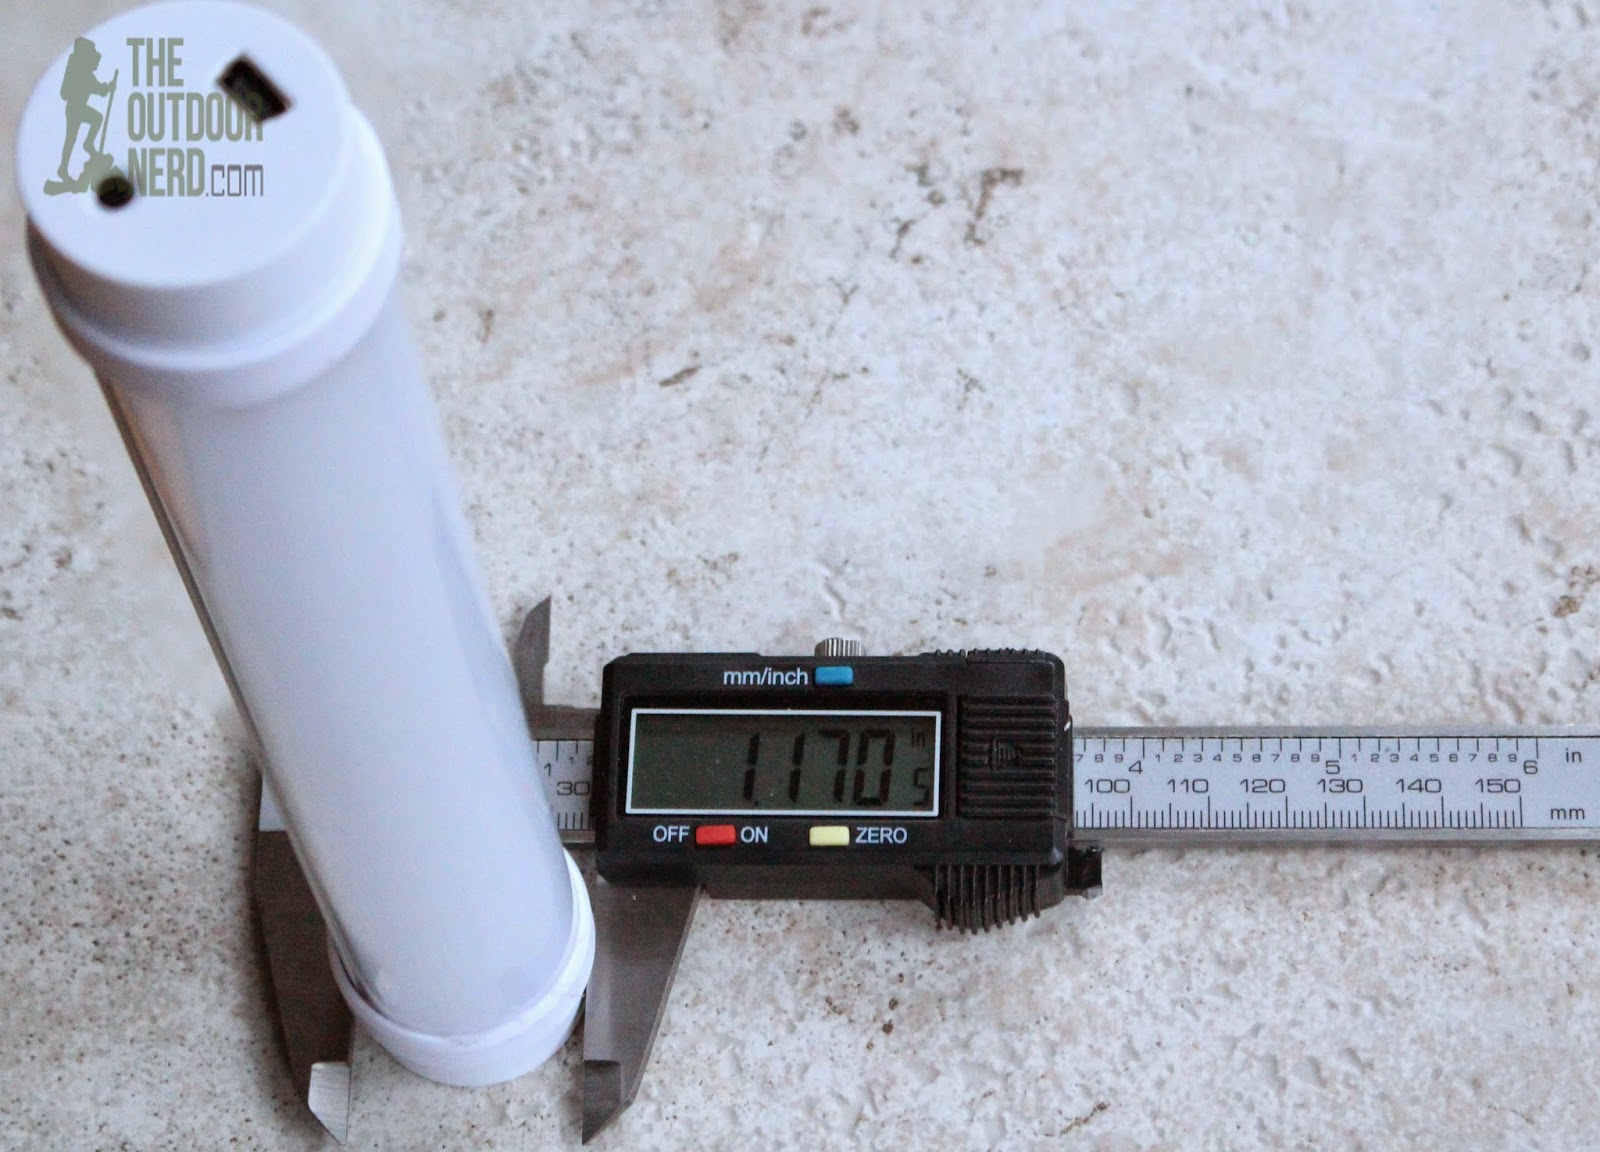 OxyLED Q6 Rechargeable USB Lantern - Caliper Measurement